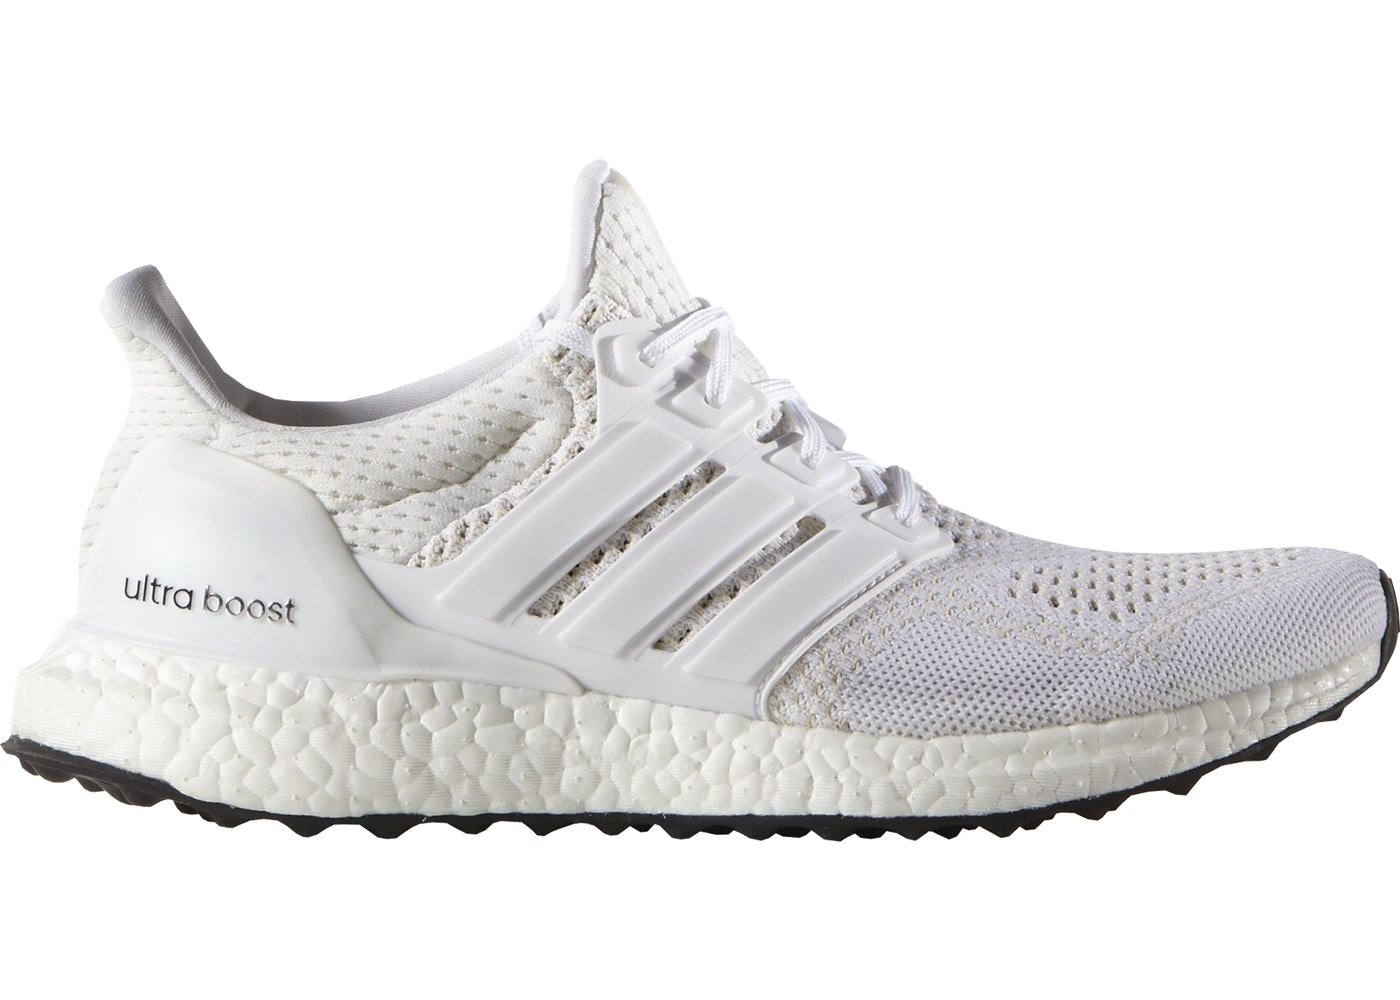 228f43eec6723 adidas Ultra Boost 1.0 Triple White (W) - S77513